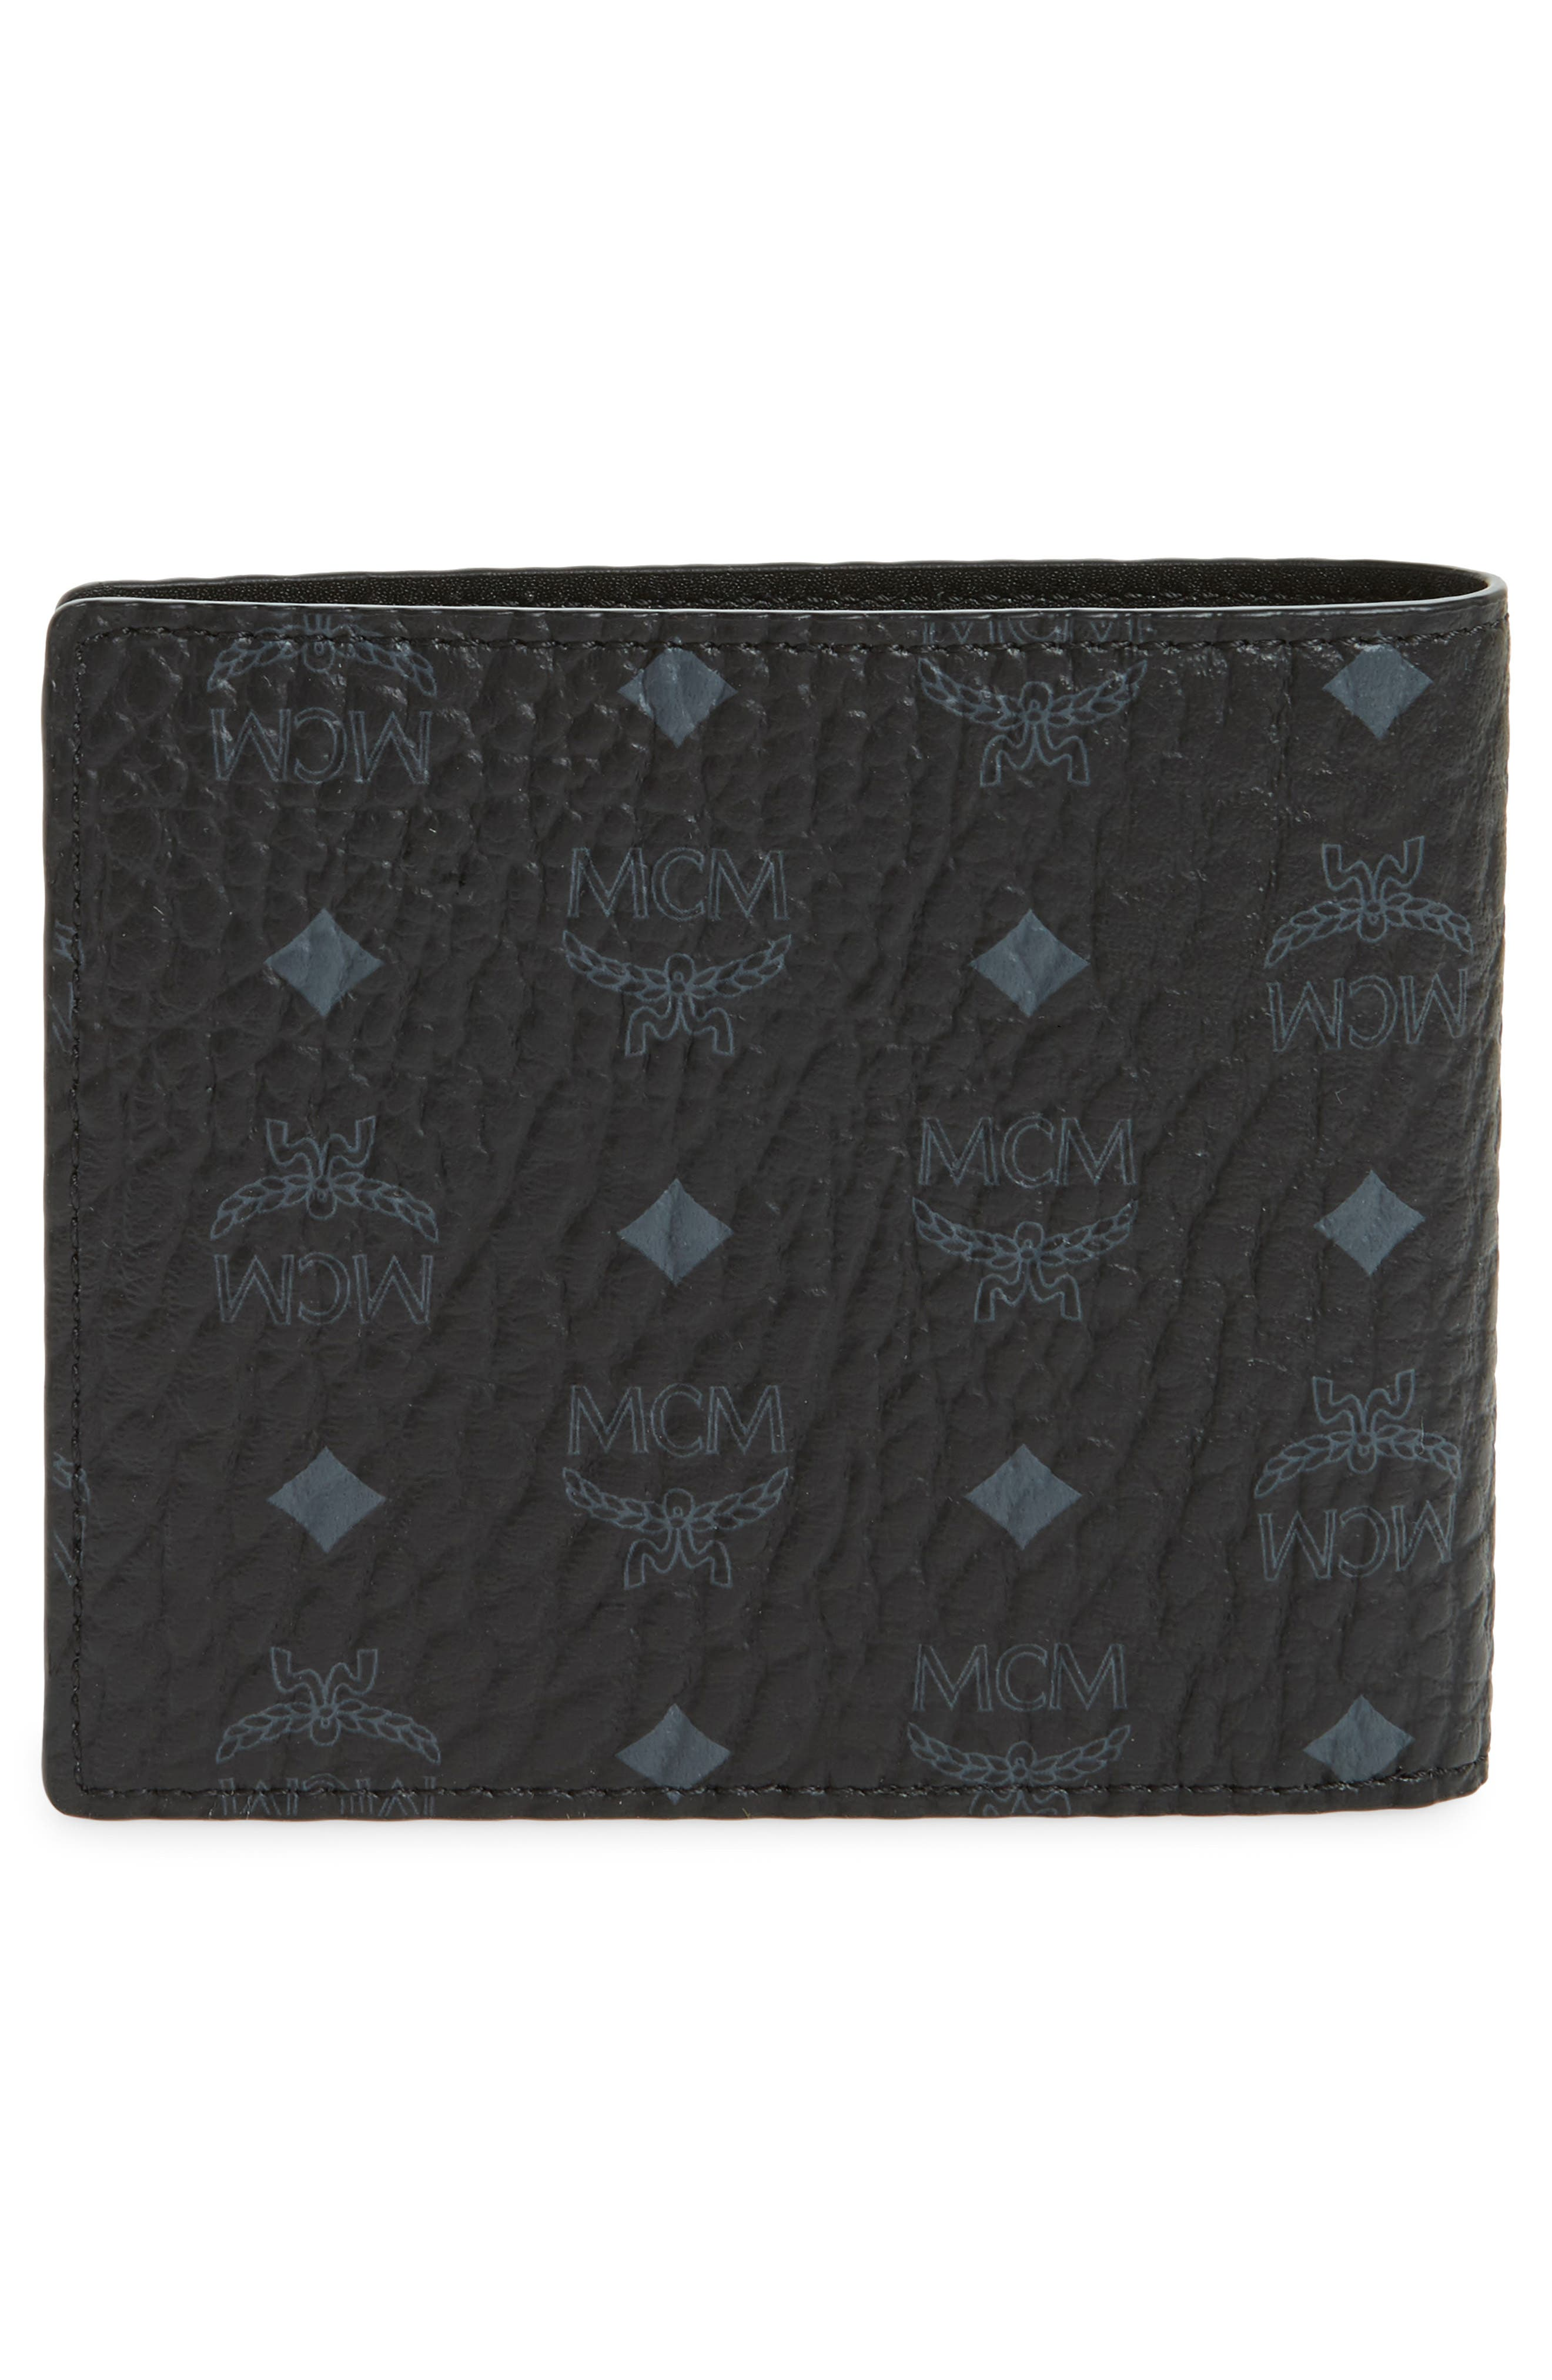 MCM, Logo Coated Canvas & Leather Wallet, Alternate thumbnail 3, color, BLACK